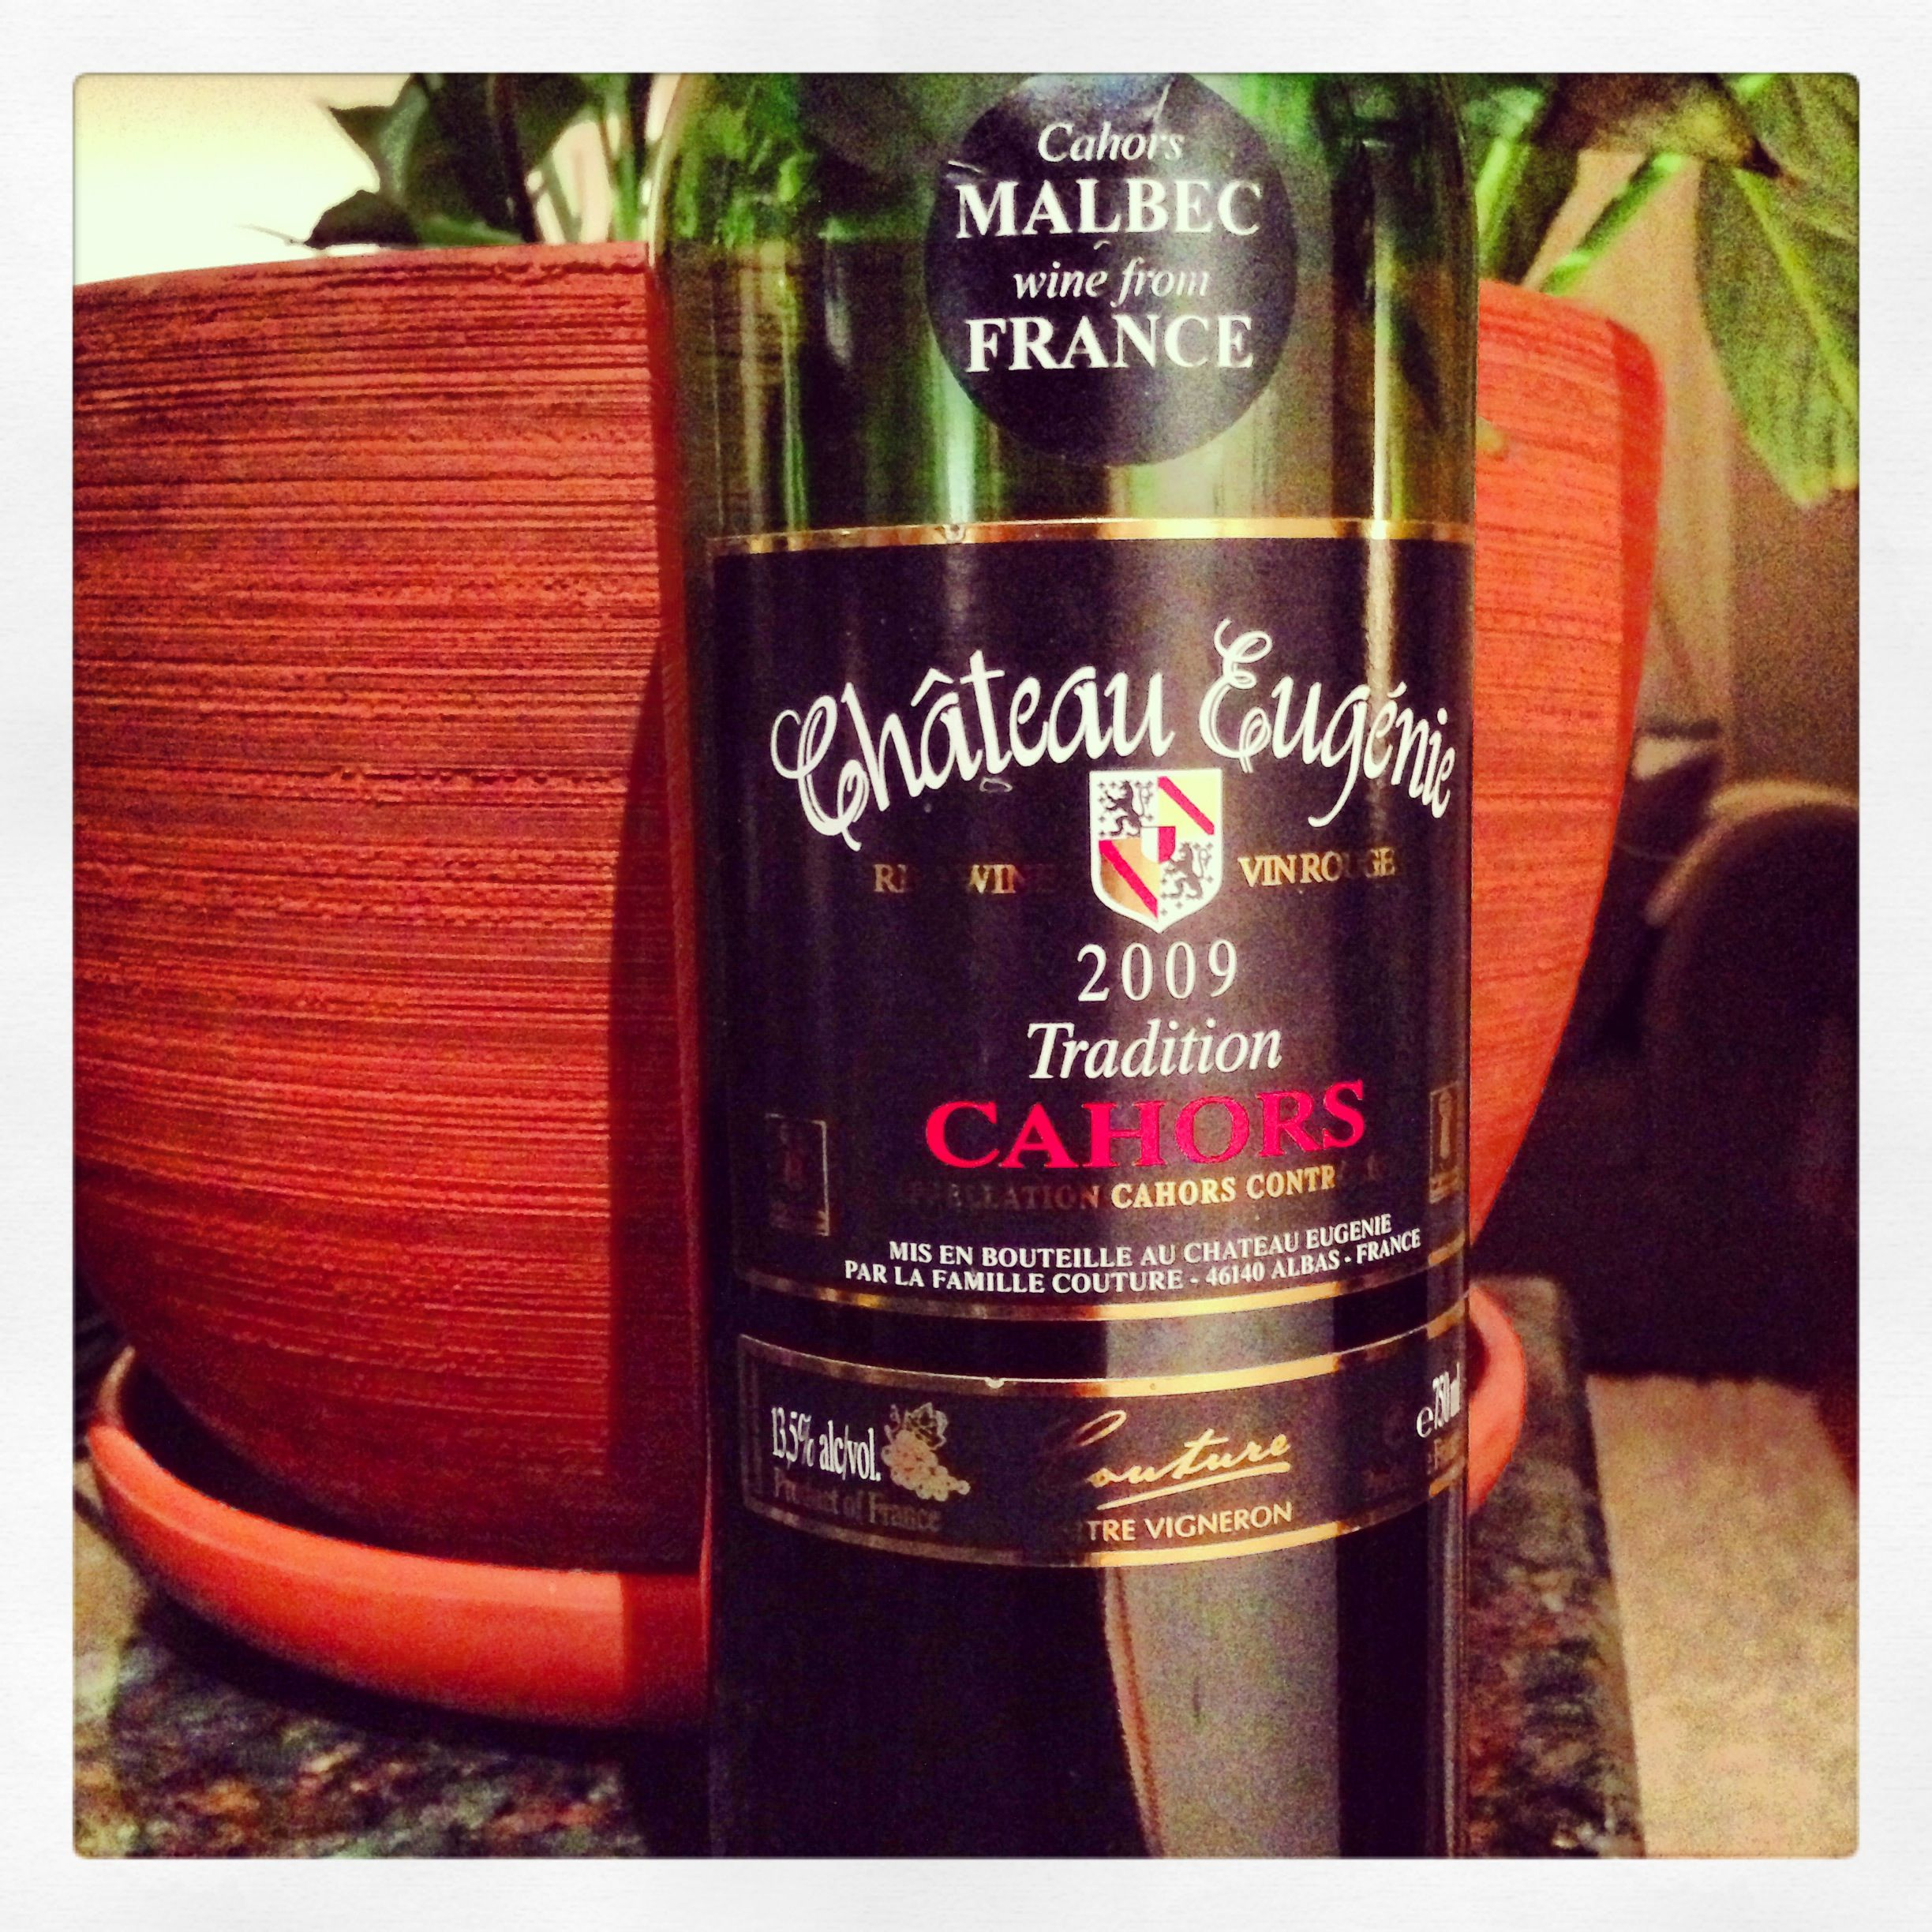 Chateau Eugenie Malbec Fr Cahors Fr Only 15 For This Steal I Love This Dry Styled Slightly Peppery Pork Rind Character Malbec Wine Bottle Expensive Wine